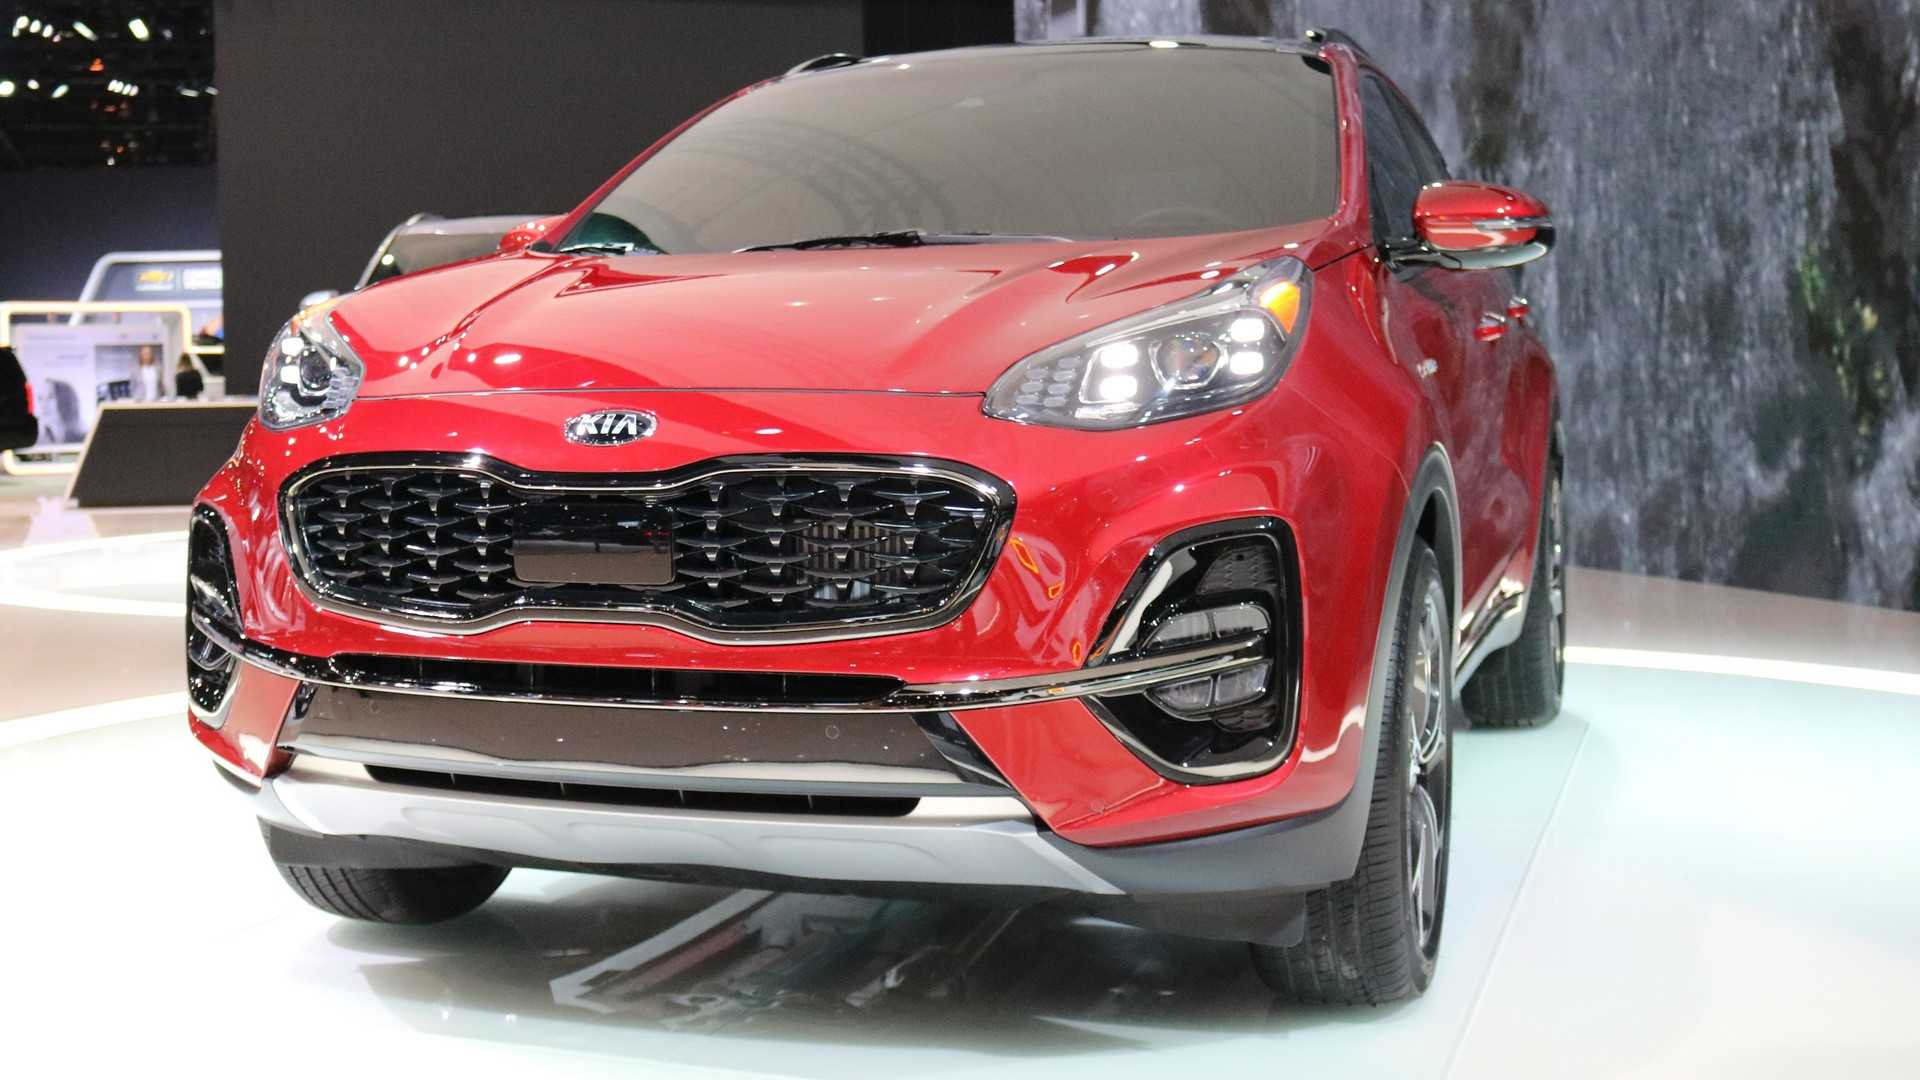 76 All New Kia New Cars 2020 Photos